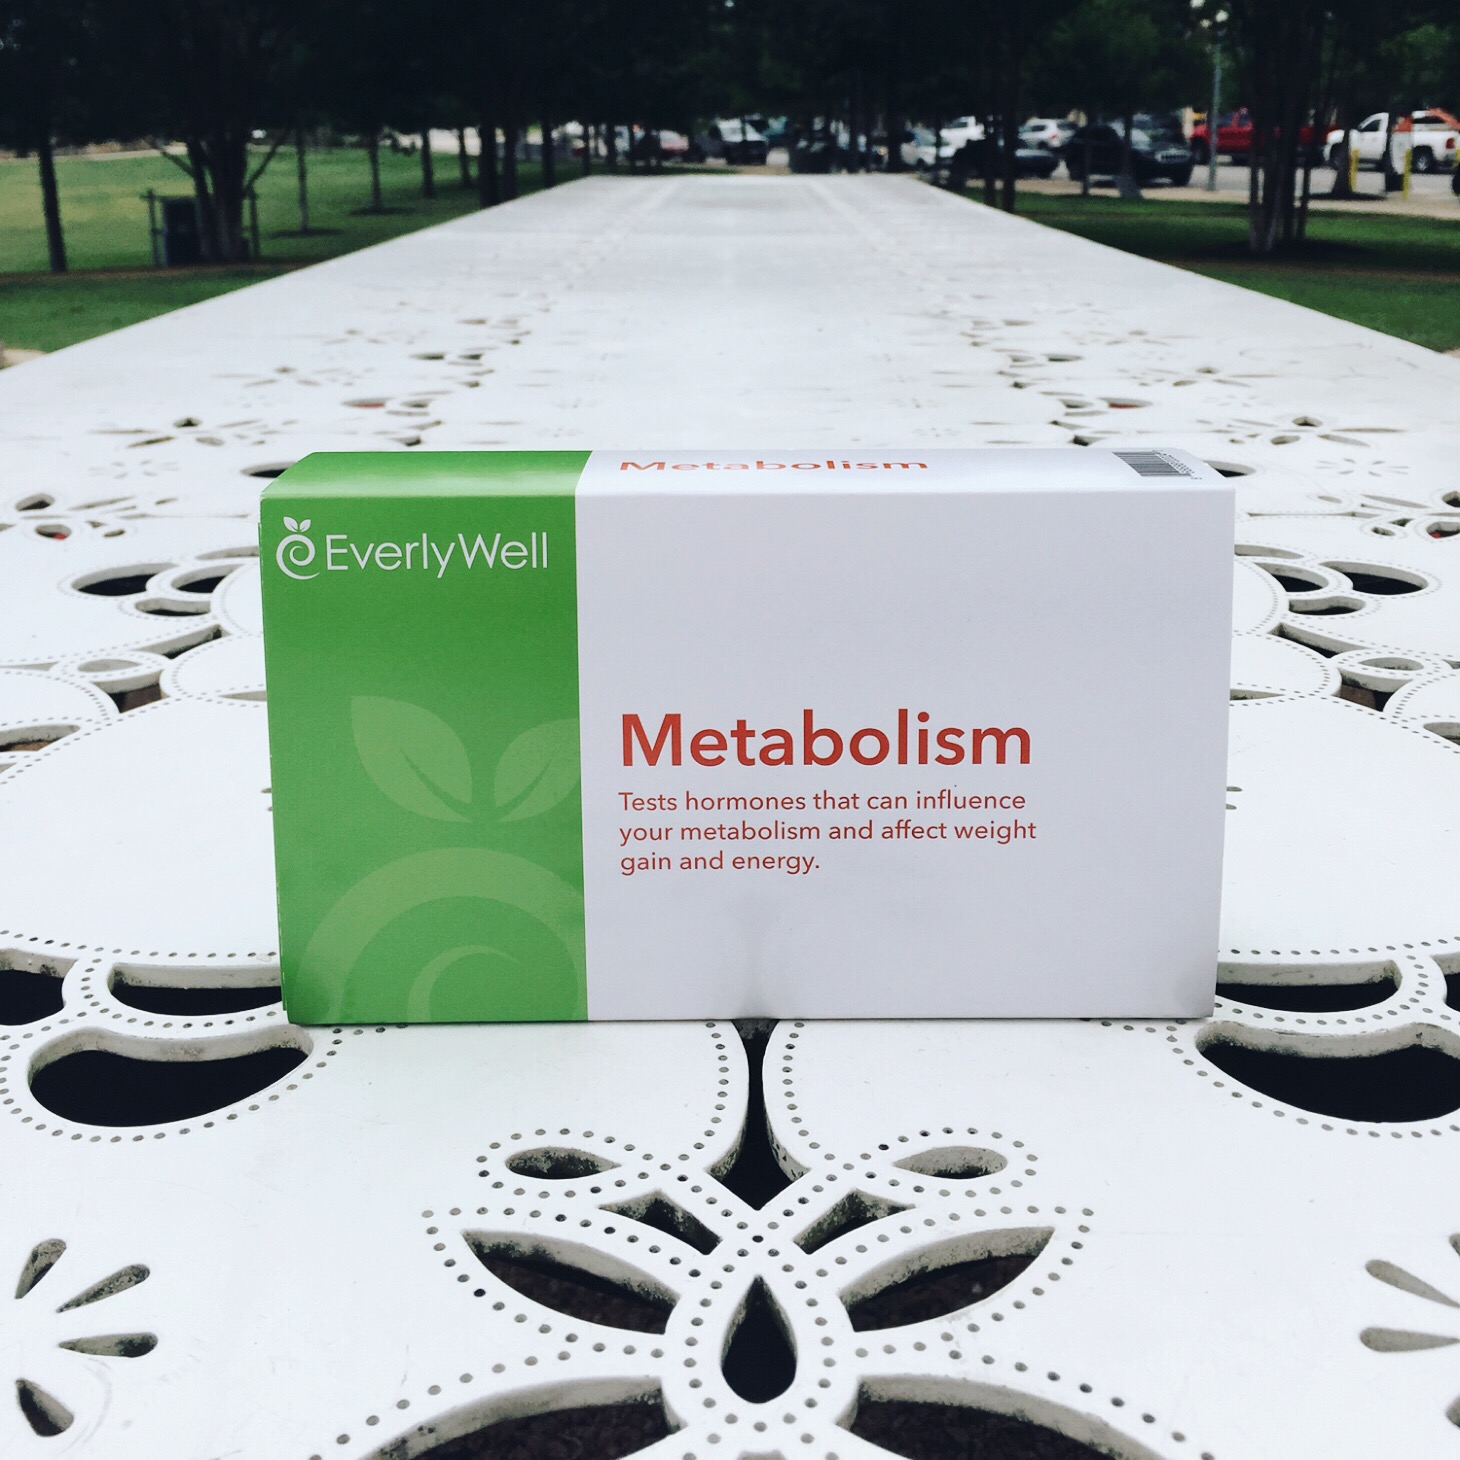 Ever wonder if your metabolism is too fast, changing, or too slow? Get answers with easy at home metabolism testing with EverlyWell.